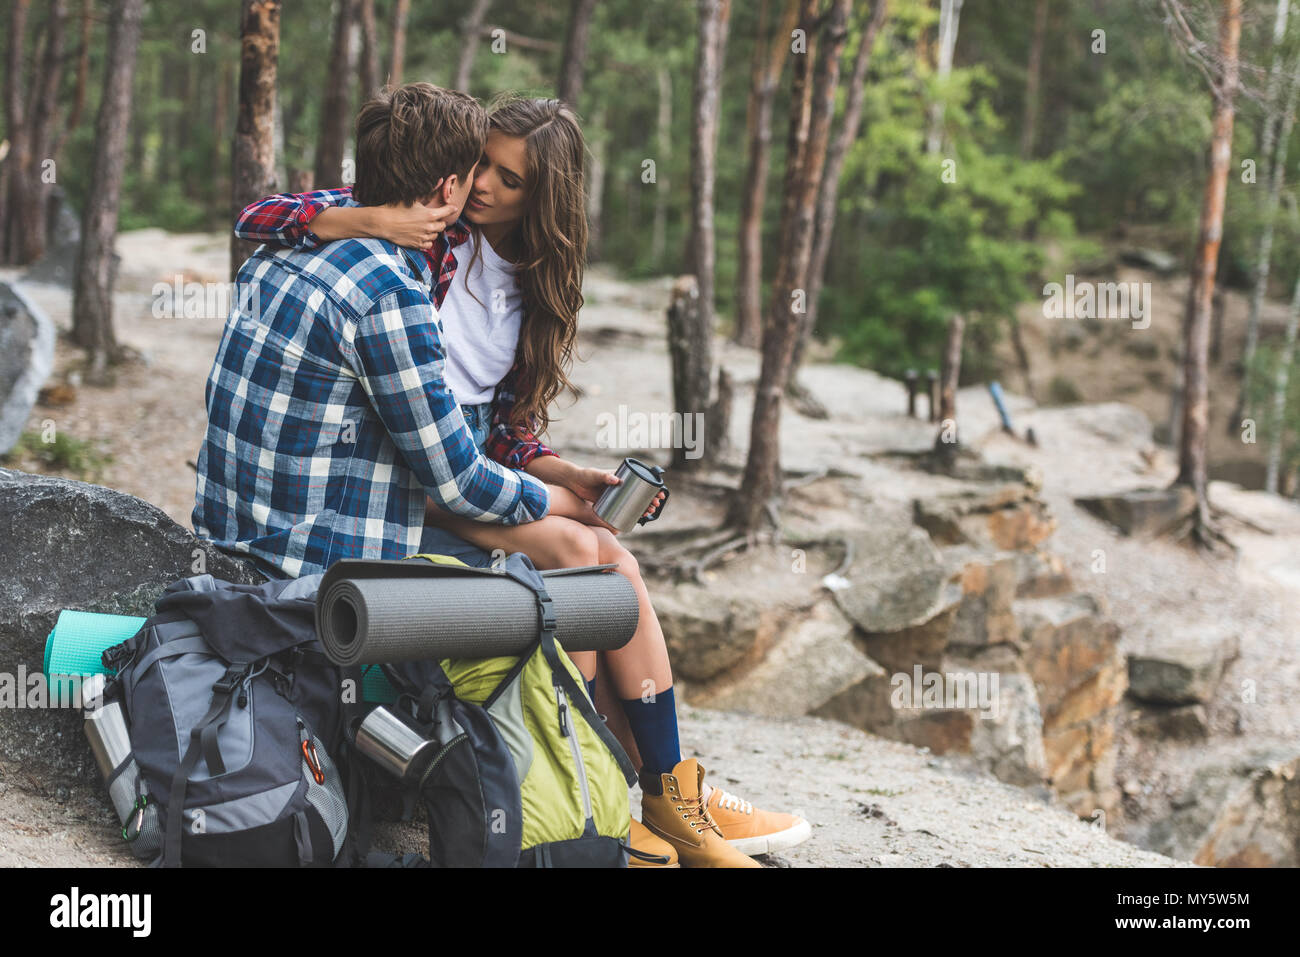 active couple kissing while having trip in forest - Stock Image